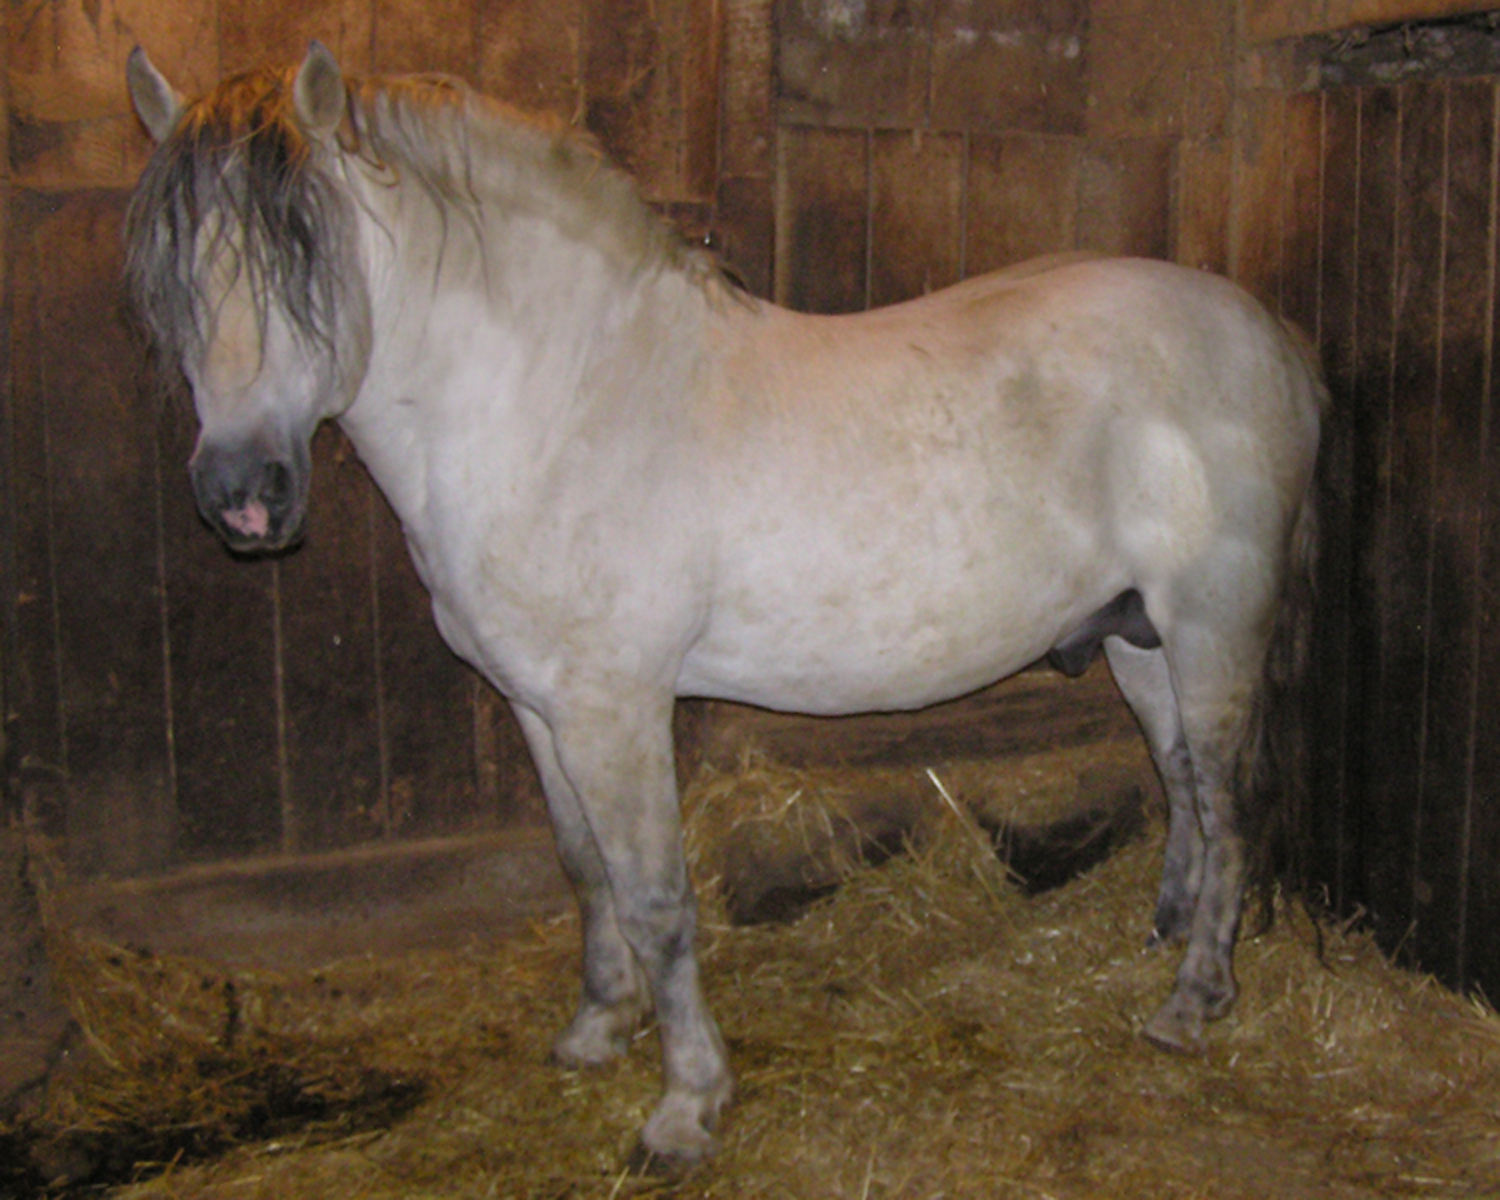 Windmill Farm John (Gray)  DOB:1995 STALLION  Sire: Smokey  Dam: Bing's P.J.  Proven breeder, has thrown black and grey colts, all with plenty of leg, and some chrome.  He's got the style you want!